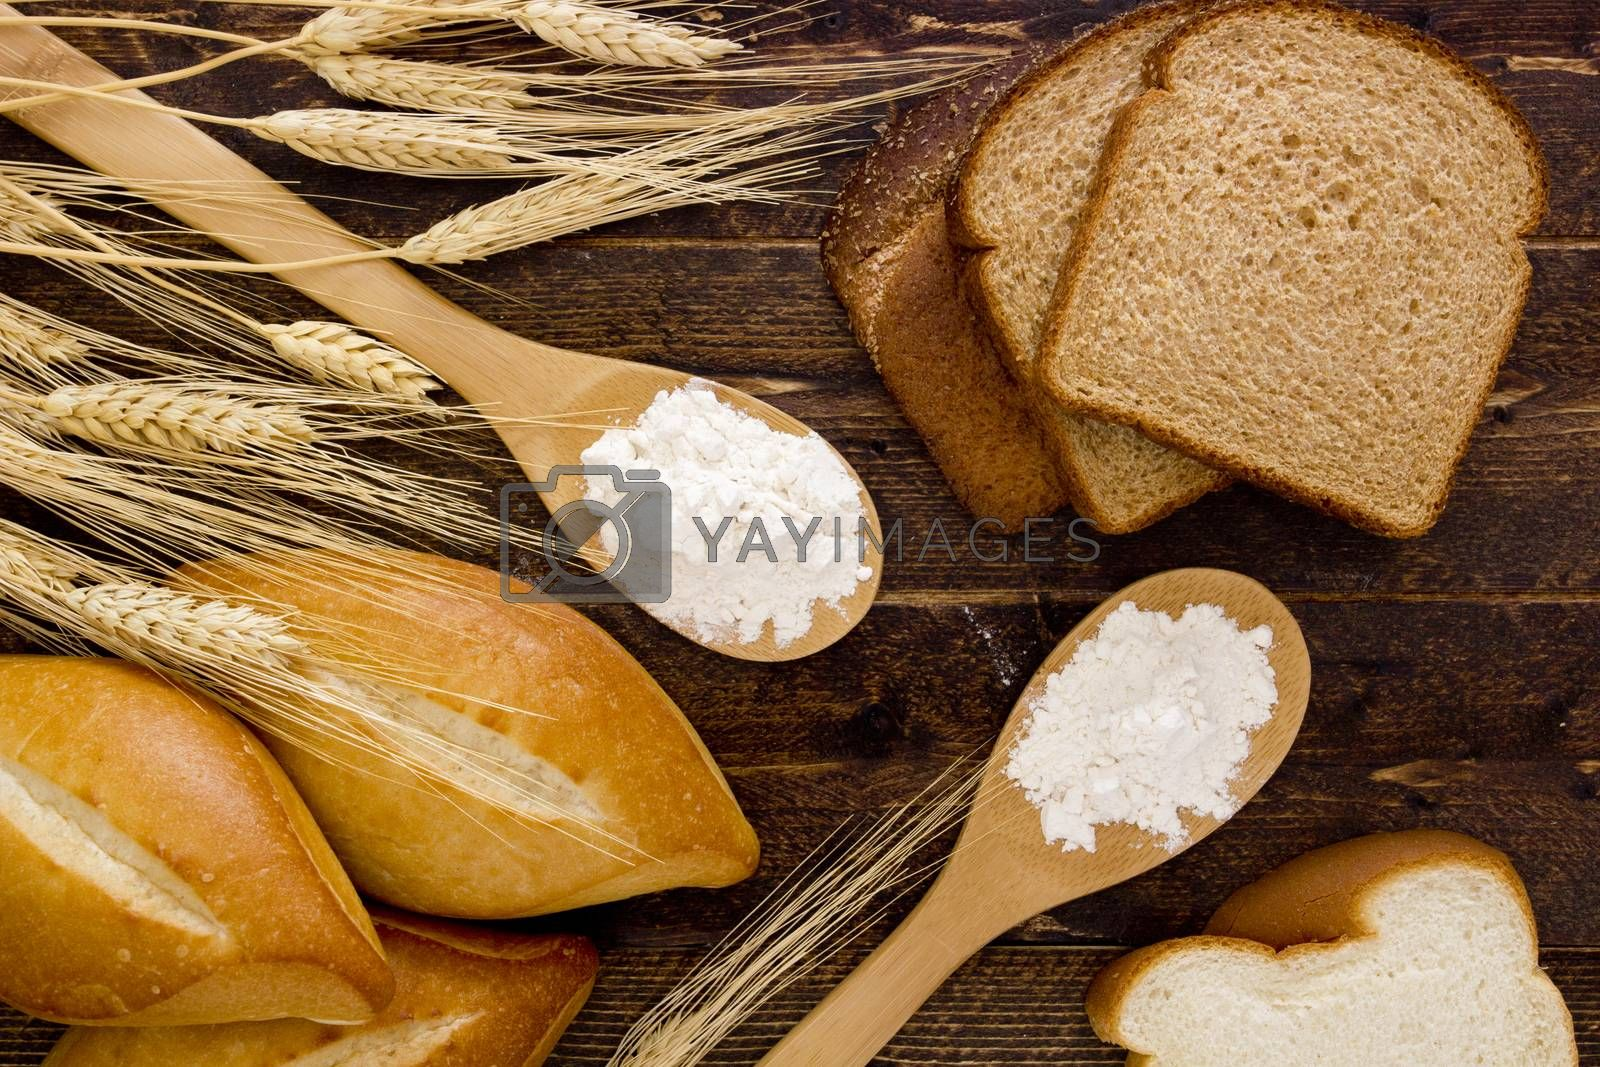 Royalty free image of Bakery products flour in a wooden spoon by VIPDesignUSA